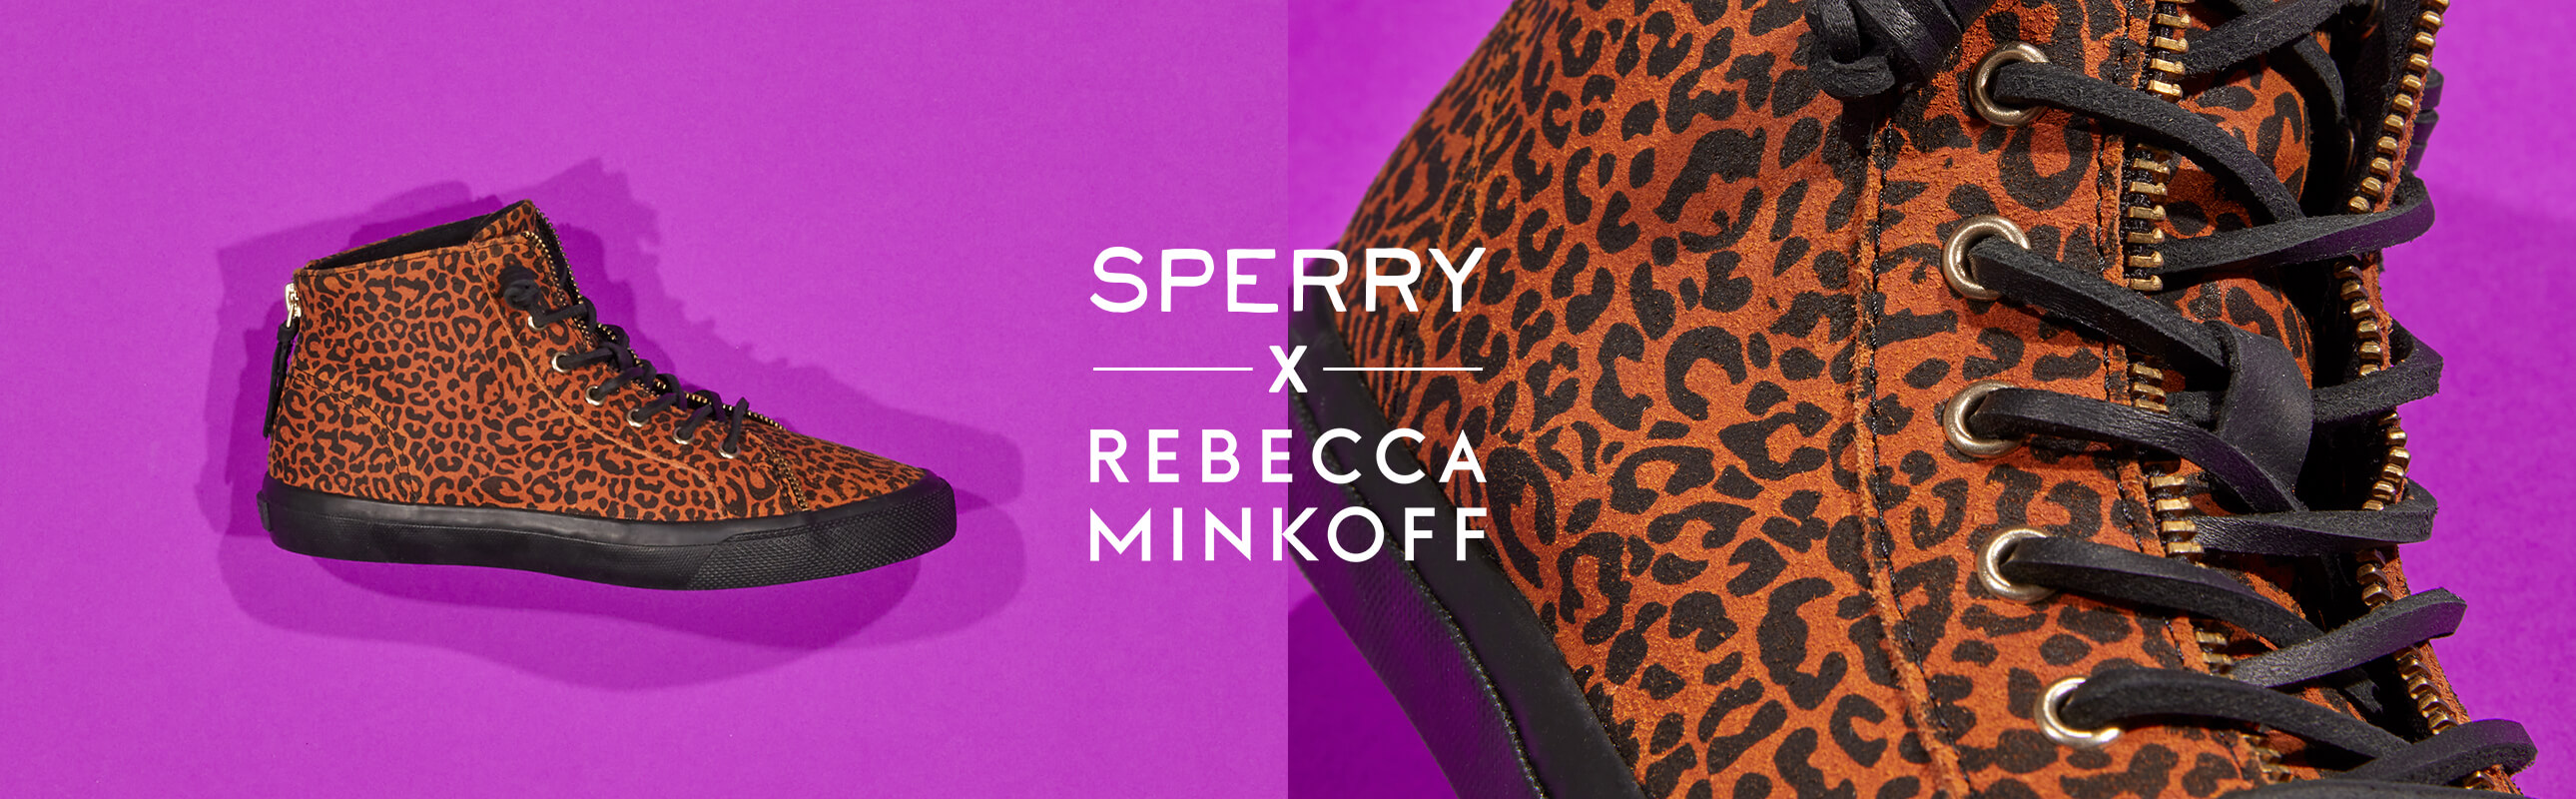 Moc Sperry Rebecca Minkoff shoes.